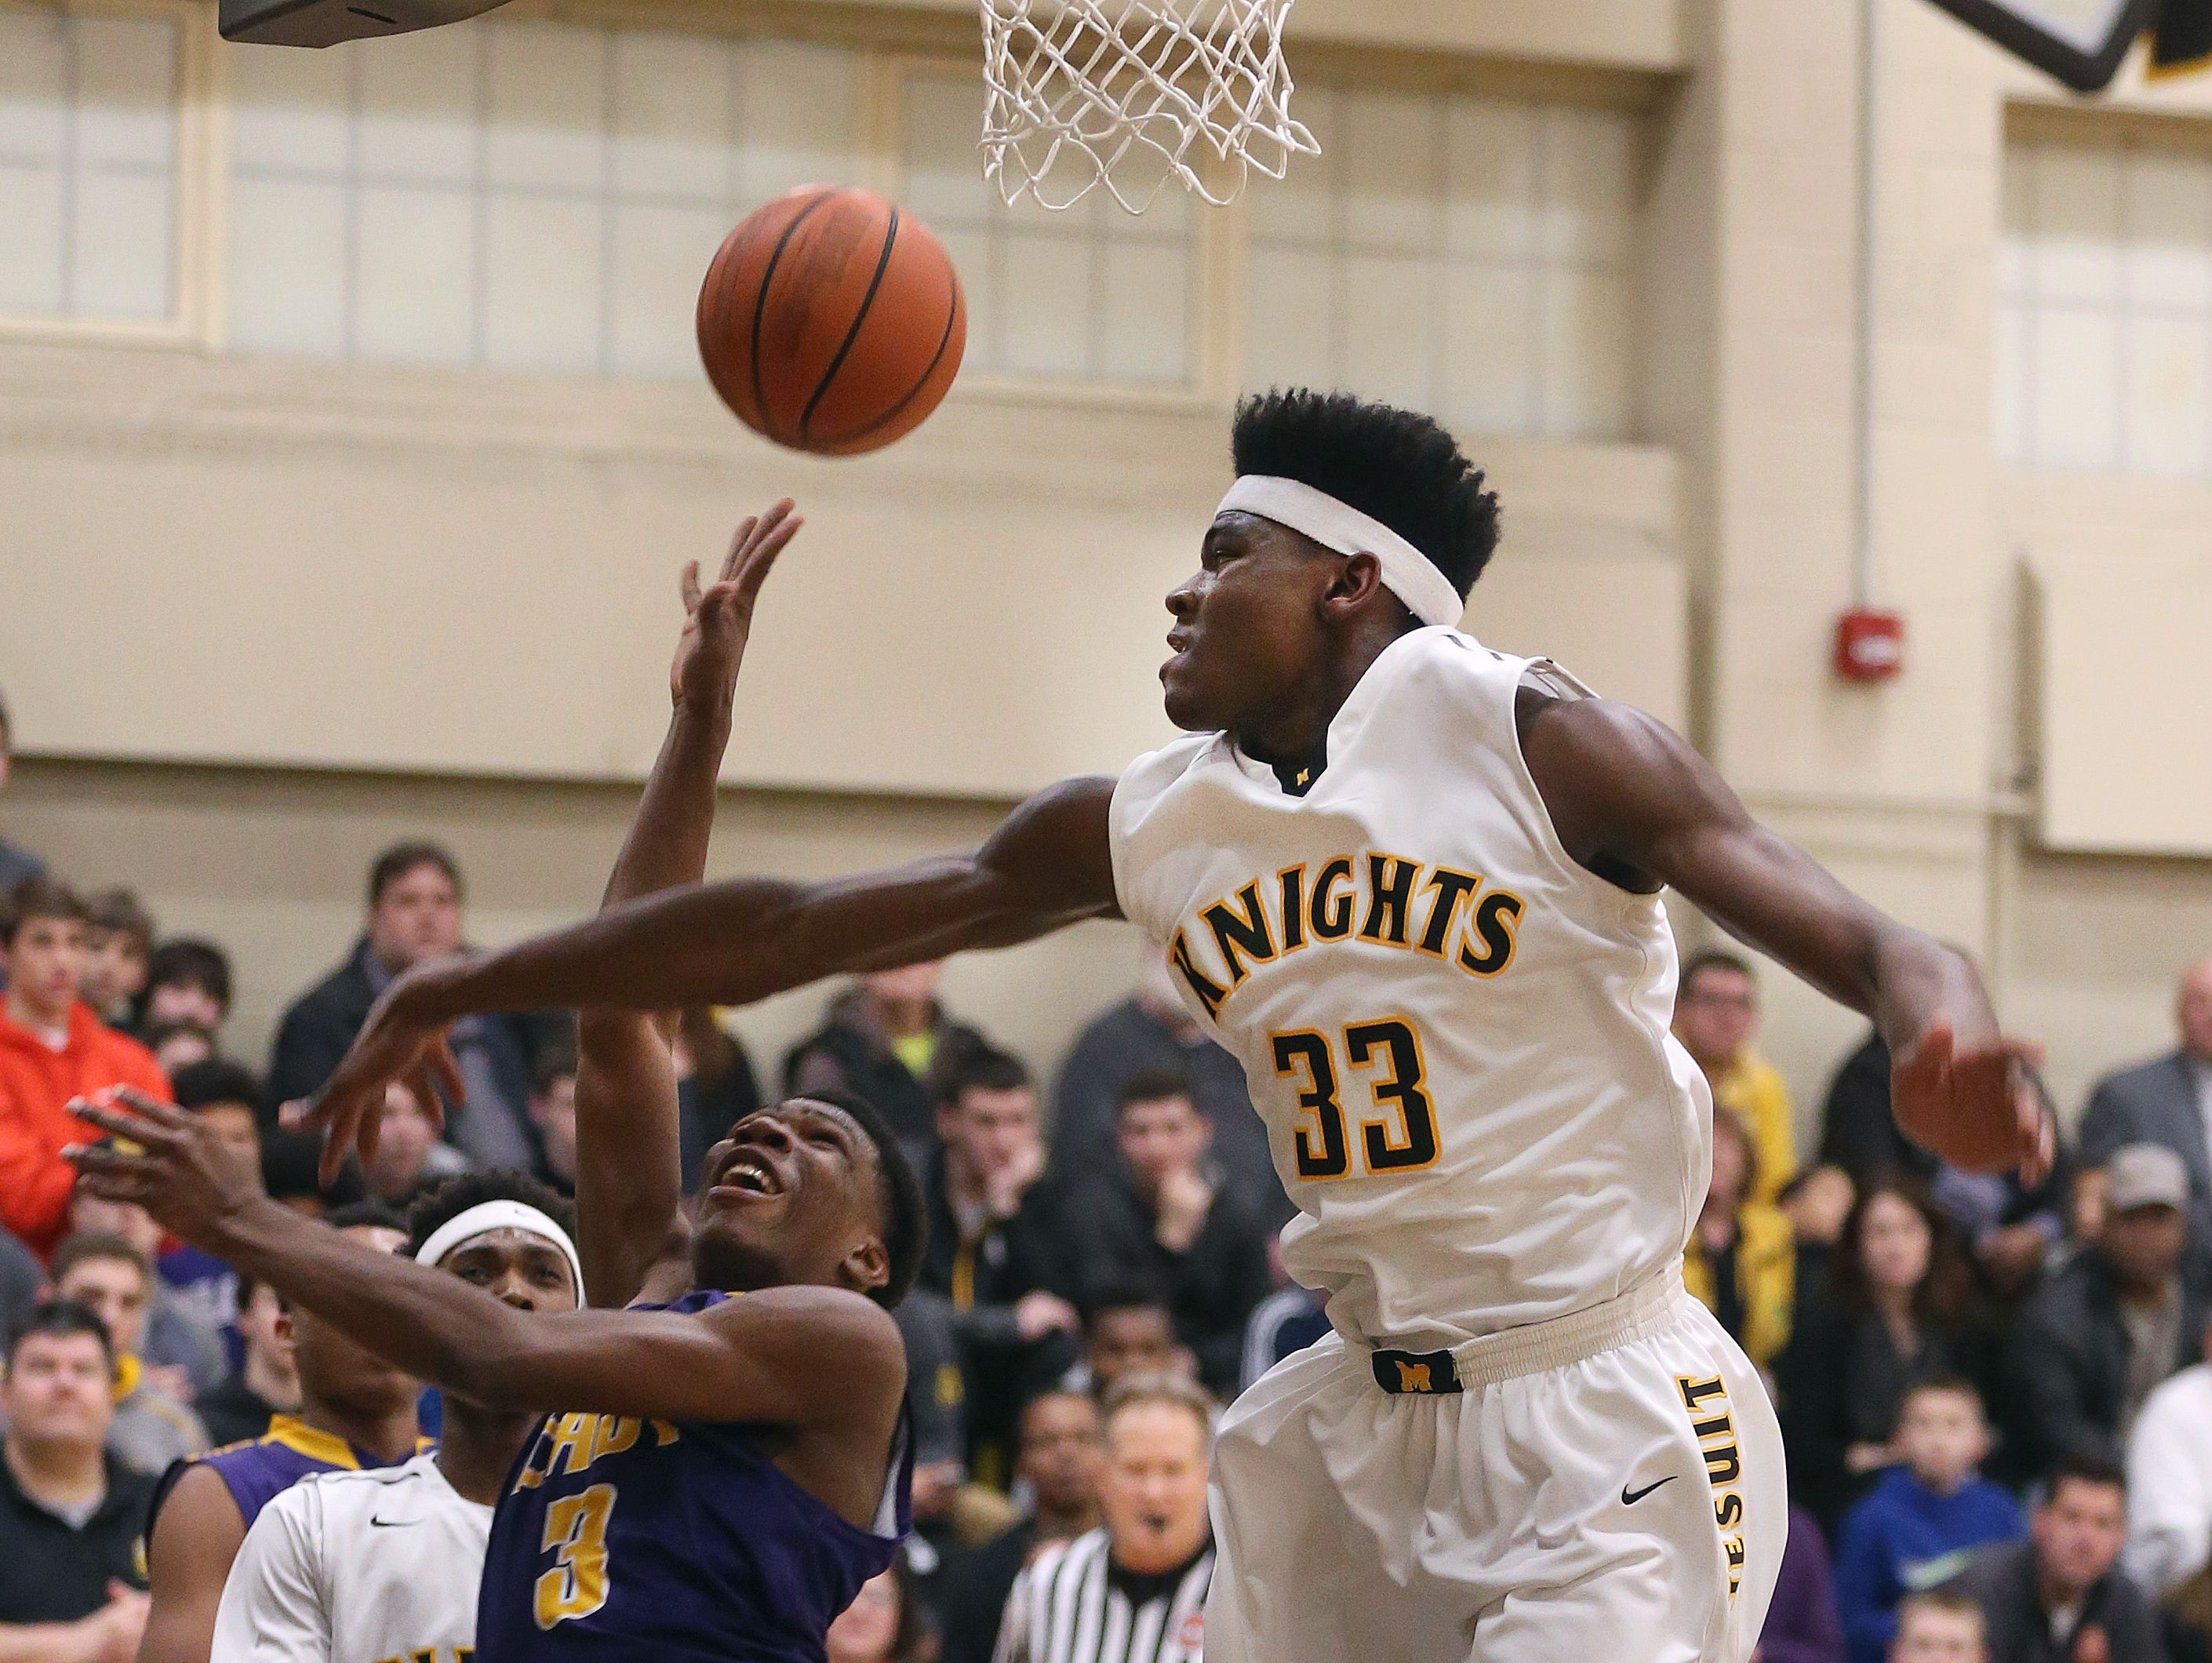 East's Zion Morrison (3) tries to shoot around the pressure by McQuaid's Isaiah Stewart (33) as the Knights went on to a 70-56 win.